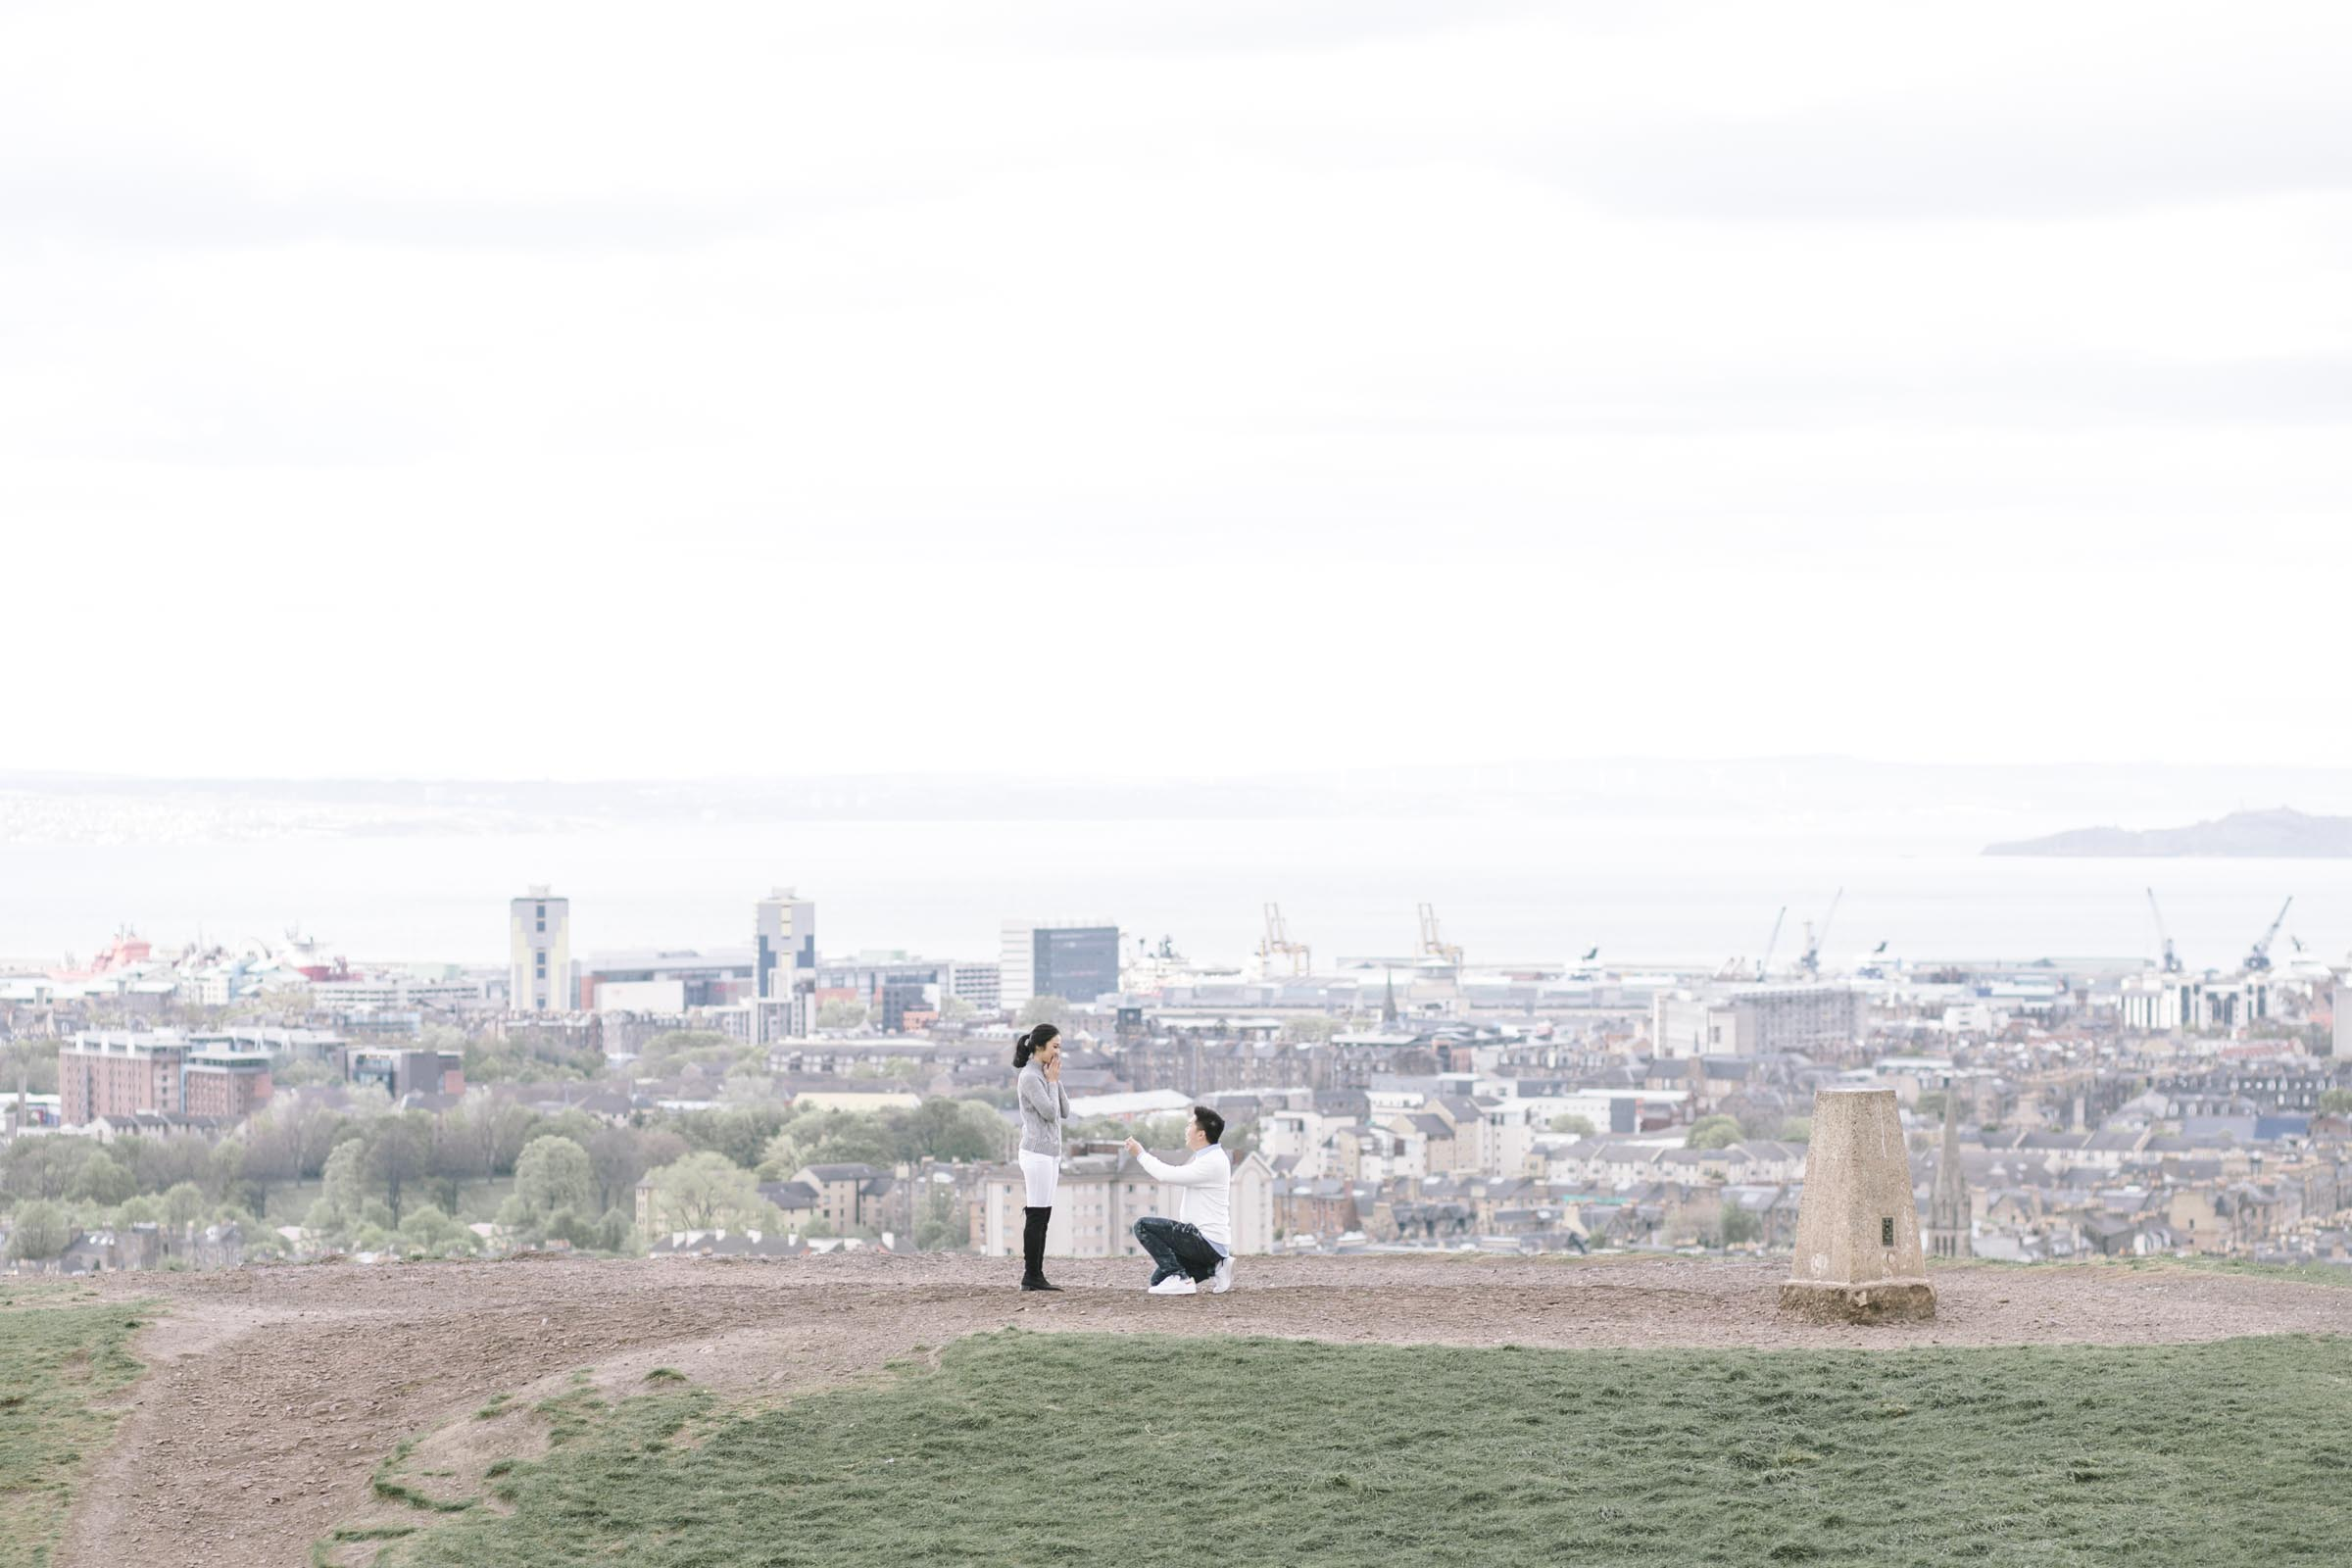 Couple Photoshoot | Suprise Wedding Proposal at Calton Hill | Edinburgh Engagement Photography by Ceranna | Scottish Fine Art Wedding Photographer